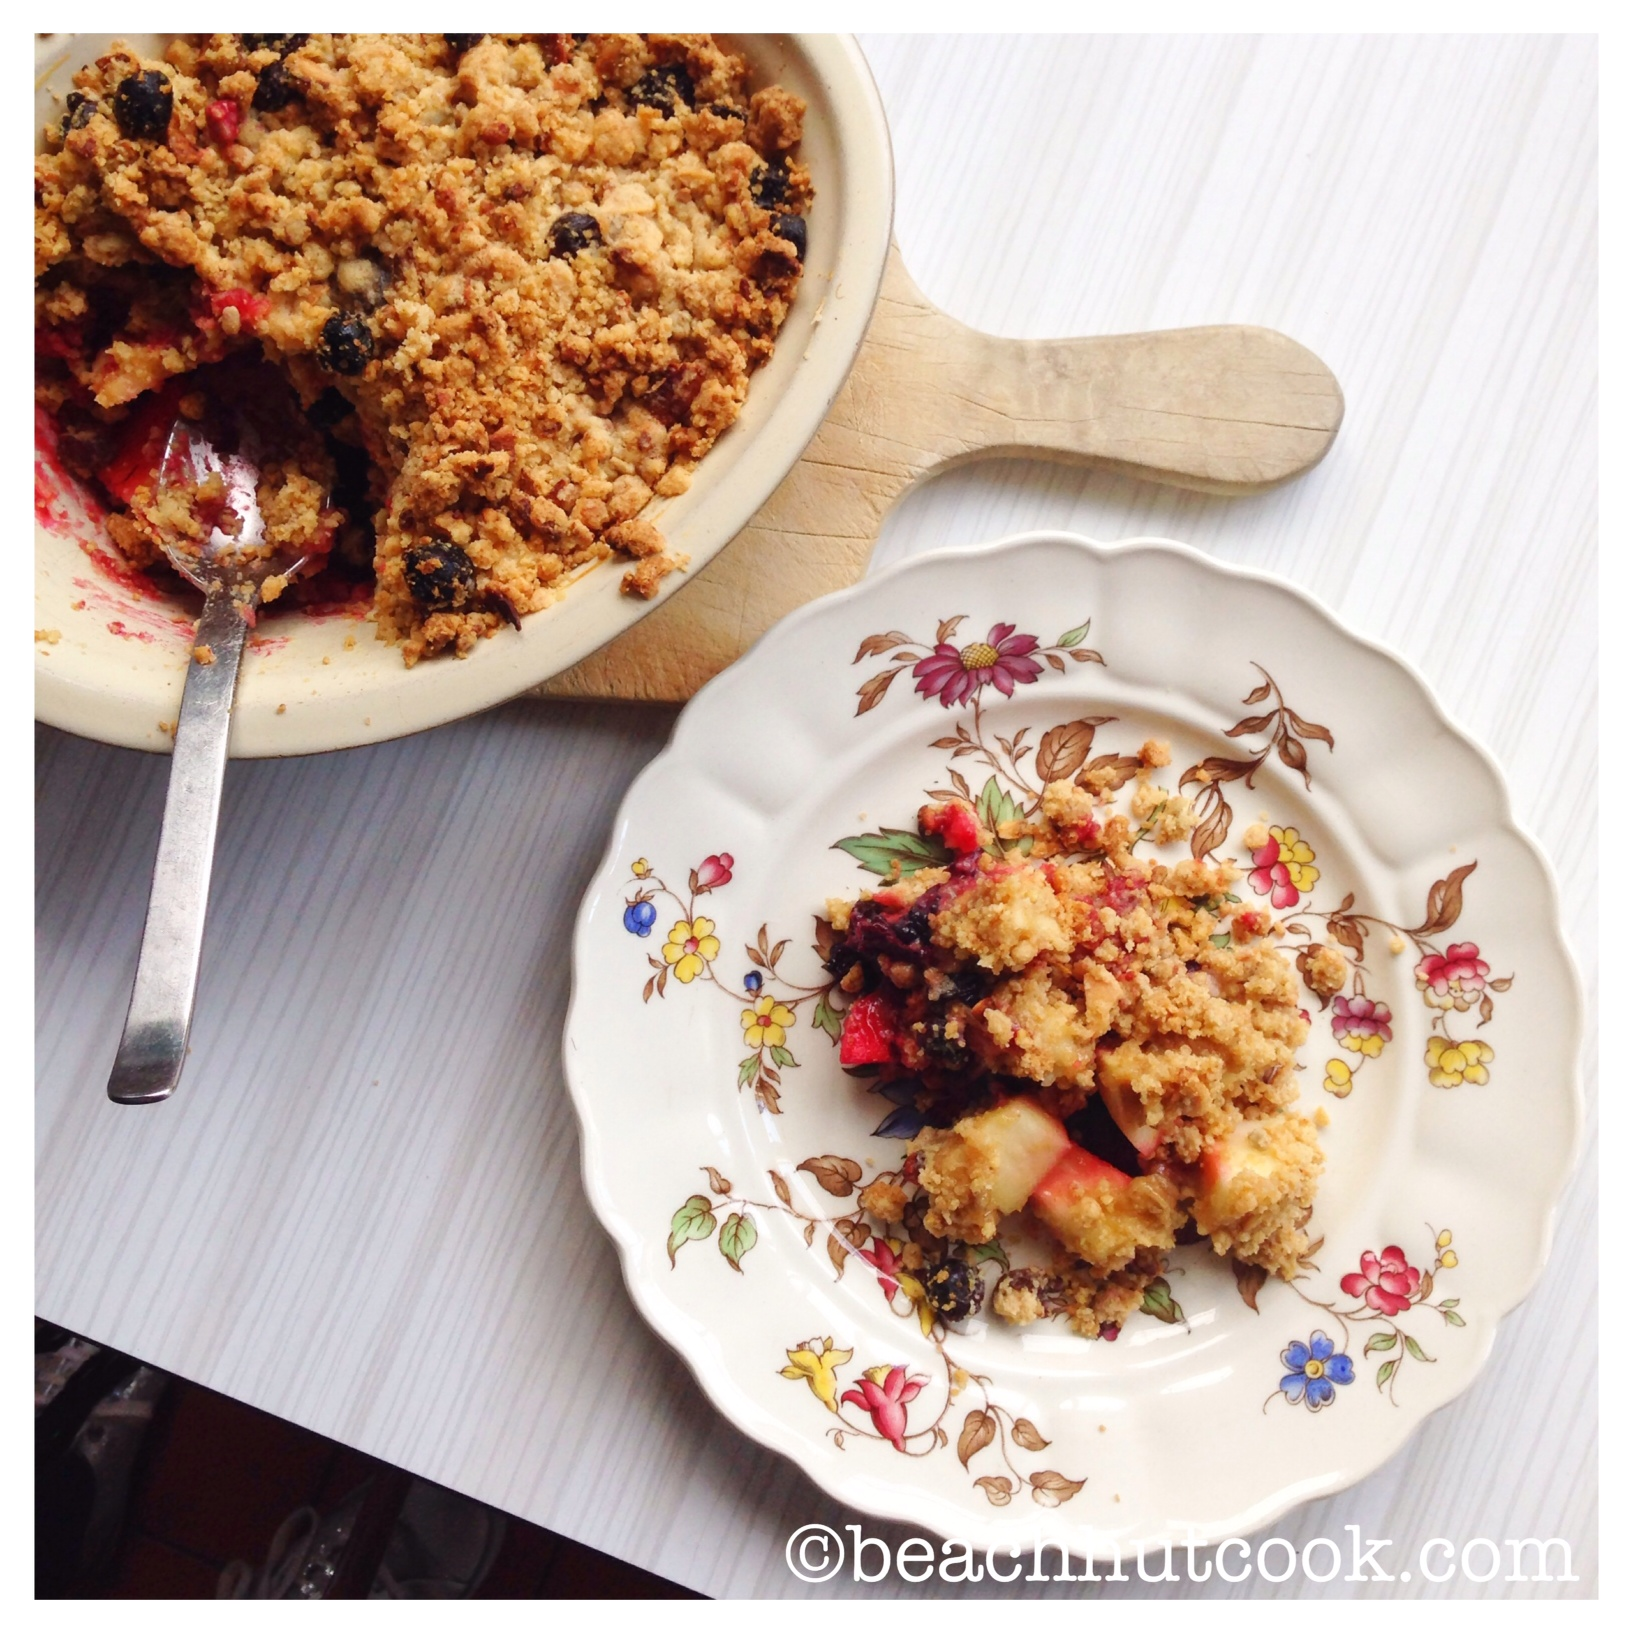 Eat Natural Muesli Crumble Recipe by Beachhutcook